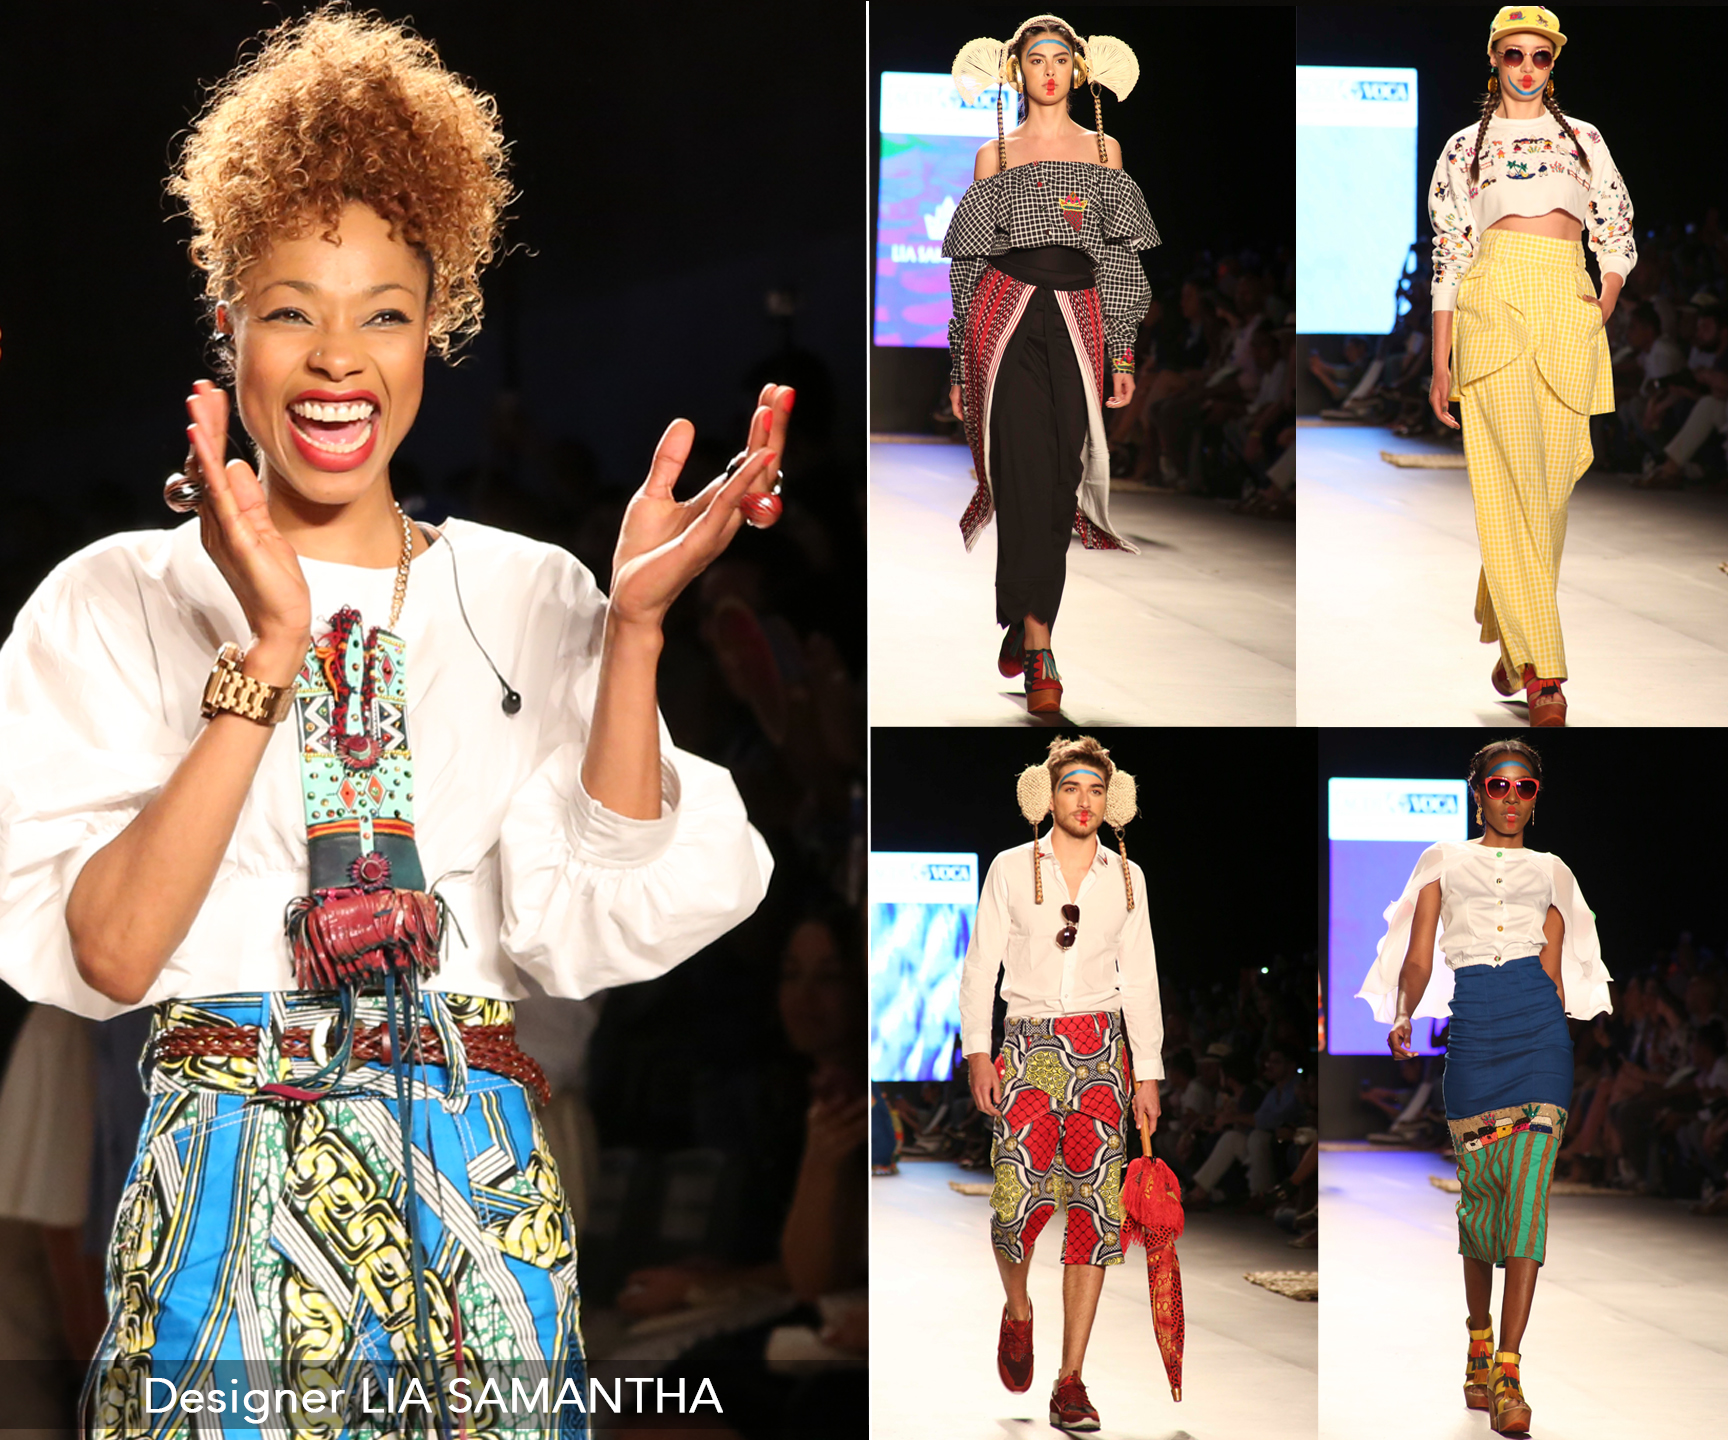 Colombian Designers - Lia Samantha